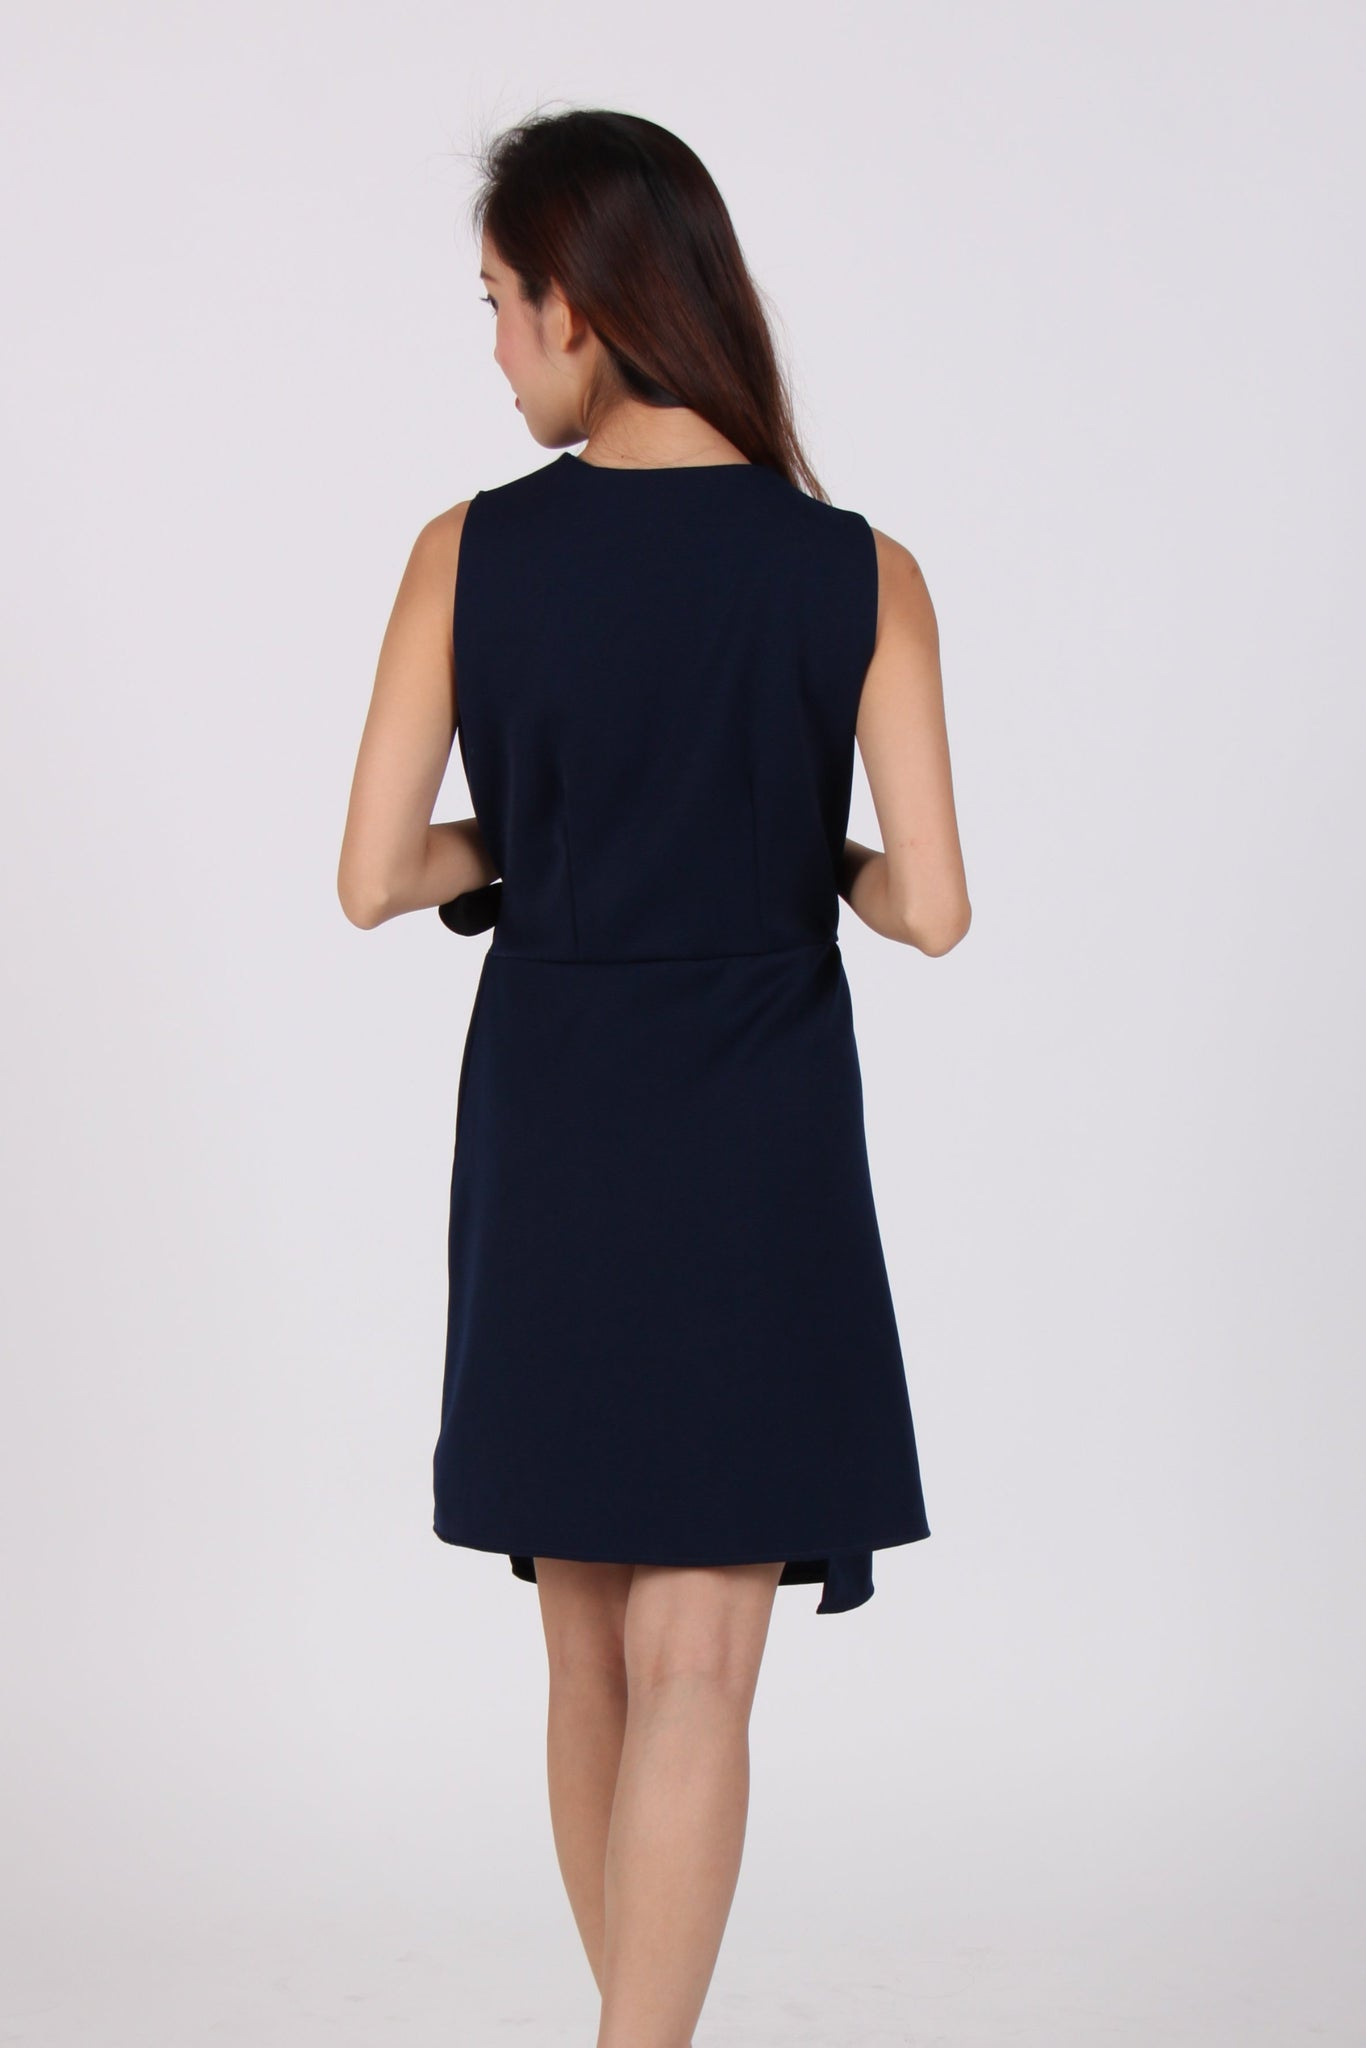 Asymmetrical Contrast Ribbon Wrap Dress in Navy Blue